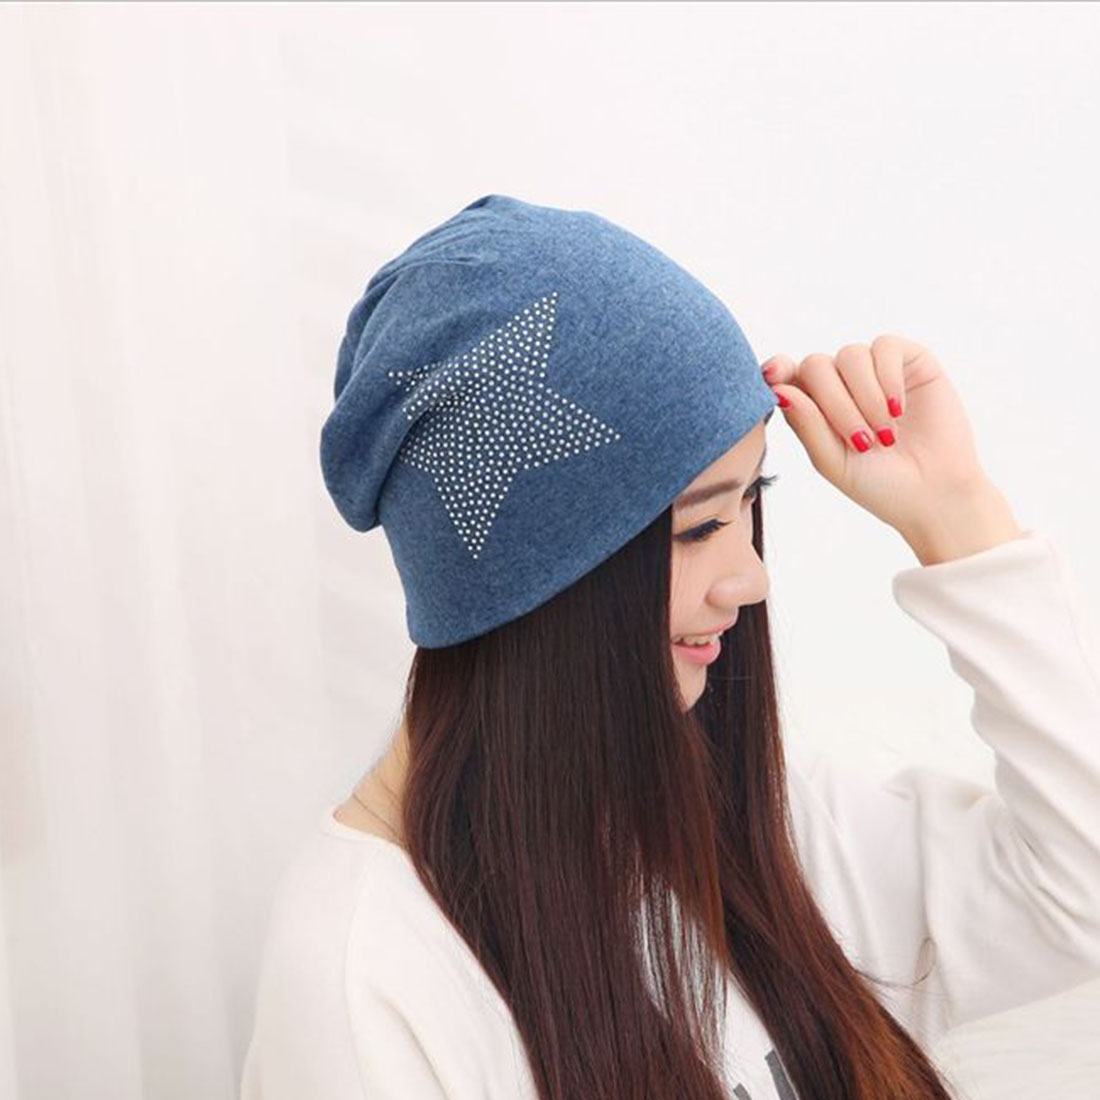 VINTAGE Style Fashion New Knit Baggy Beanie Hat with Star Female Warm Winter Hats for Girls Women Beanies Bonnet Head Cap(China)